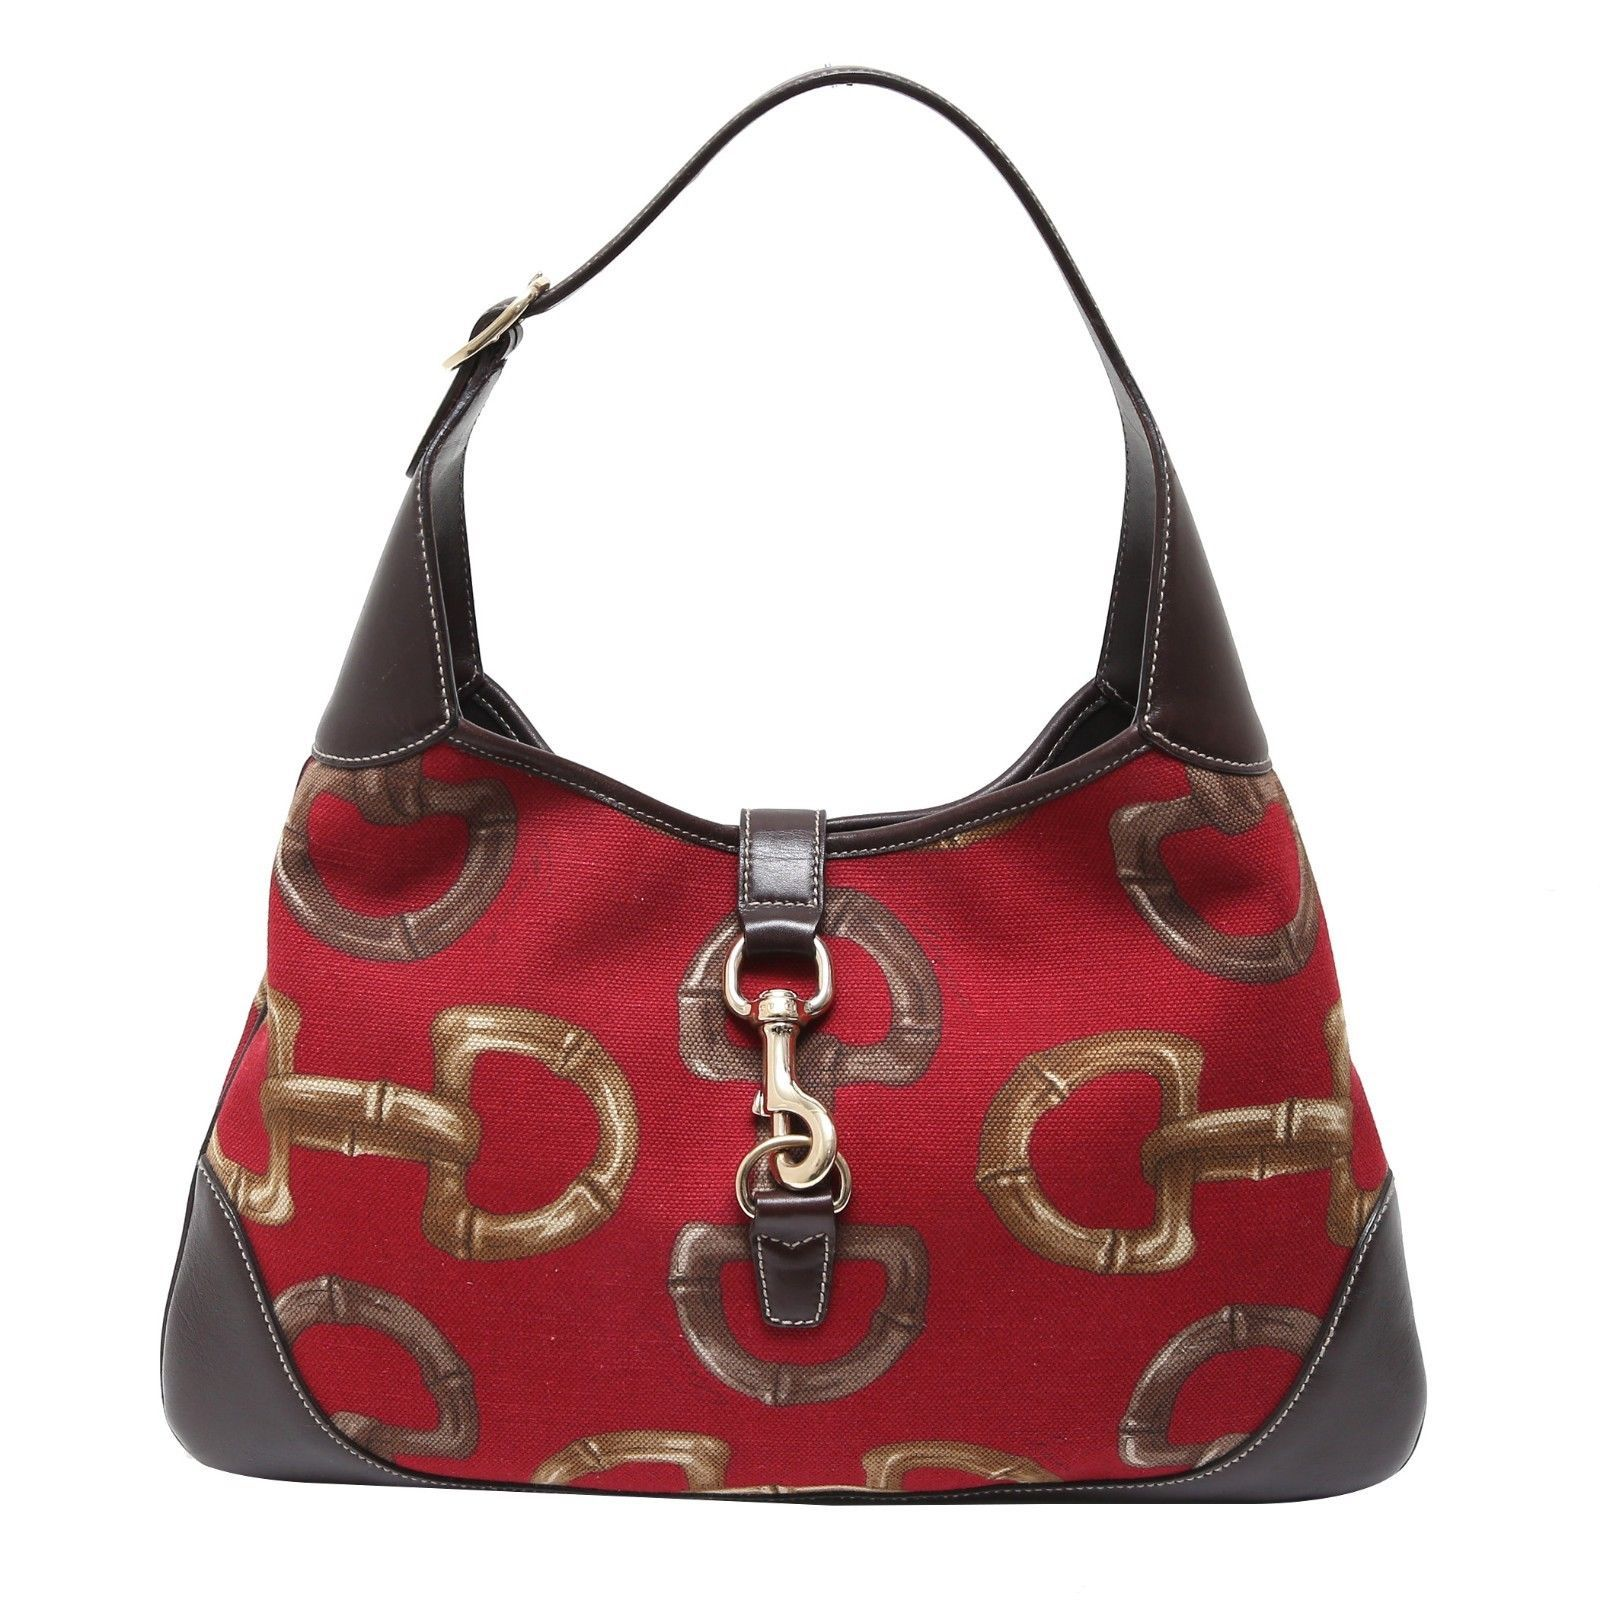 913c1f65af8 Auth Gucci Red Horsebit Bouvier Medium Hobo and 50 similar items